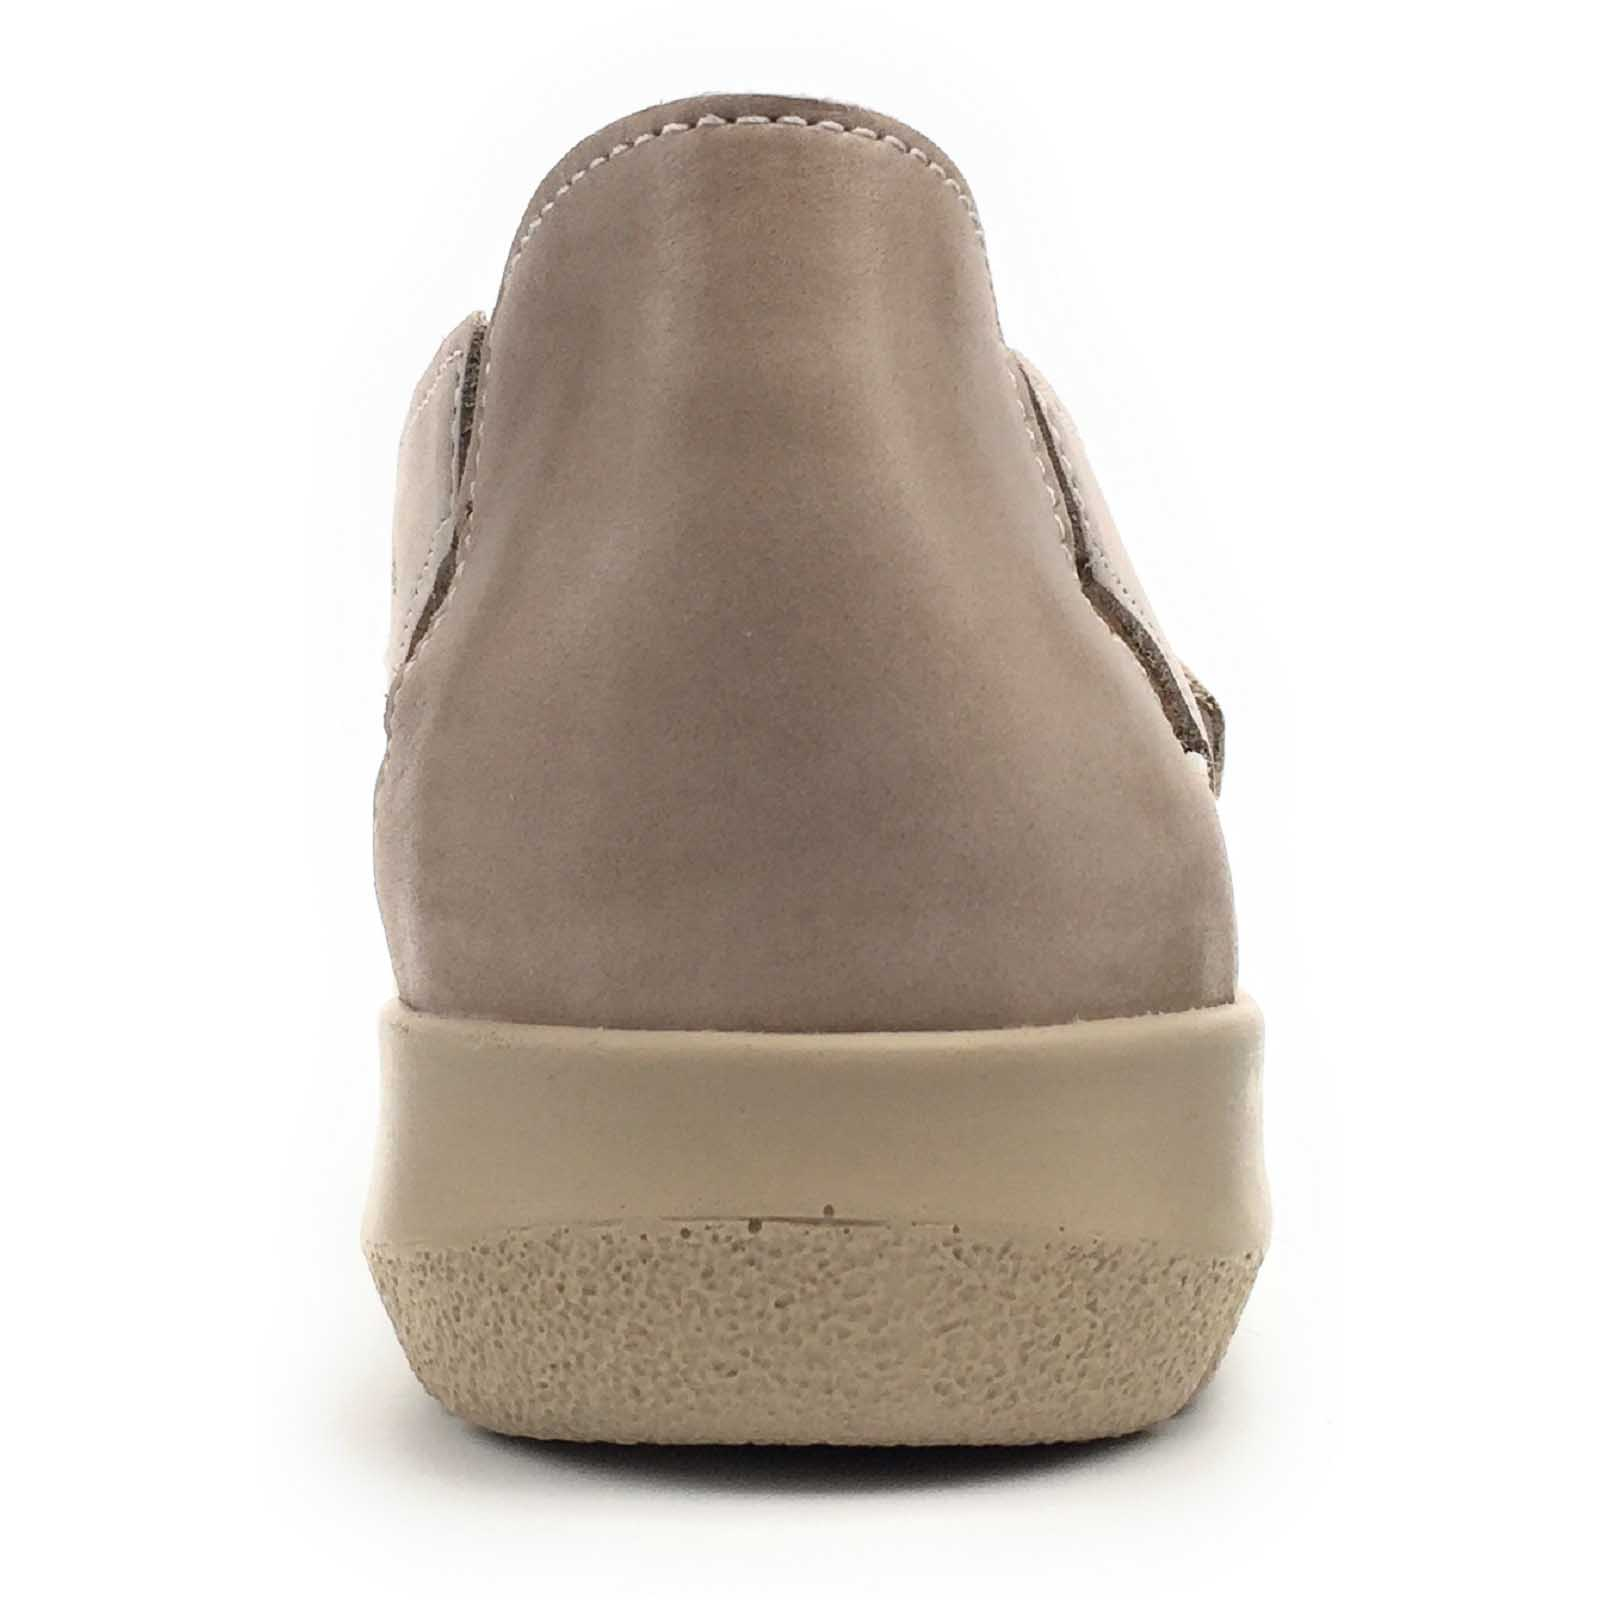 Suave mary janes 6640ms beige8061601_3